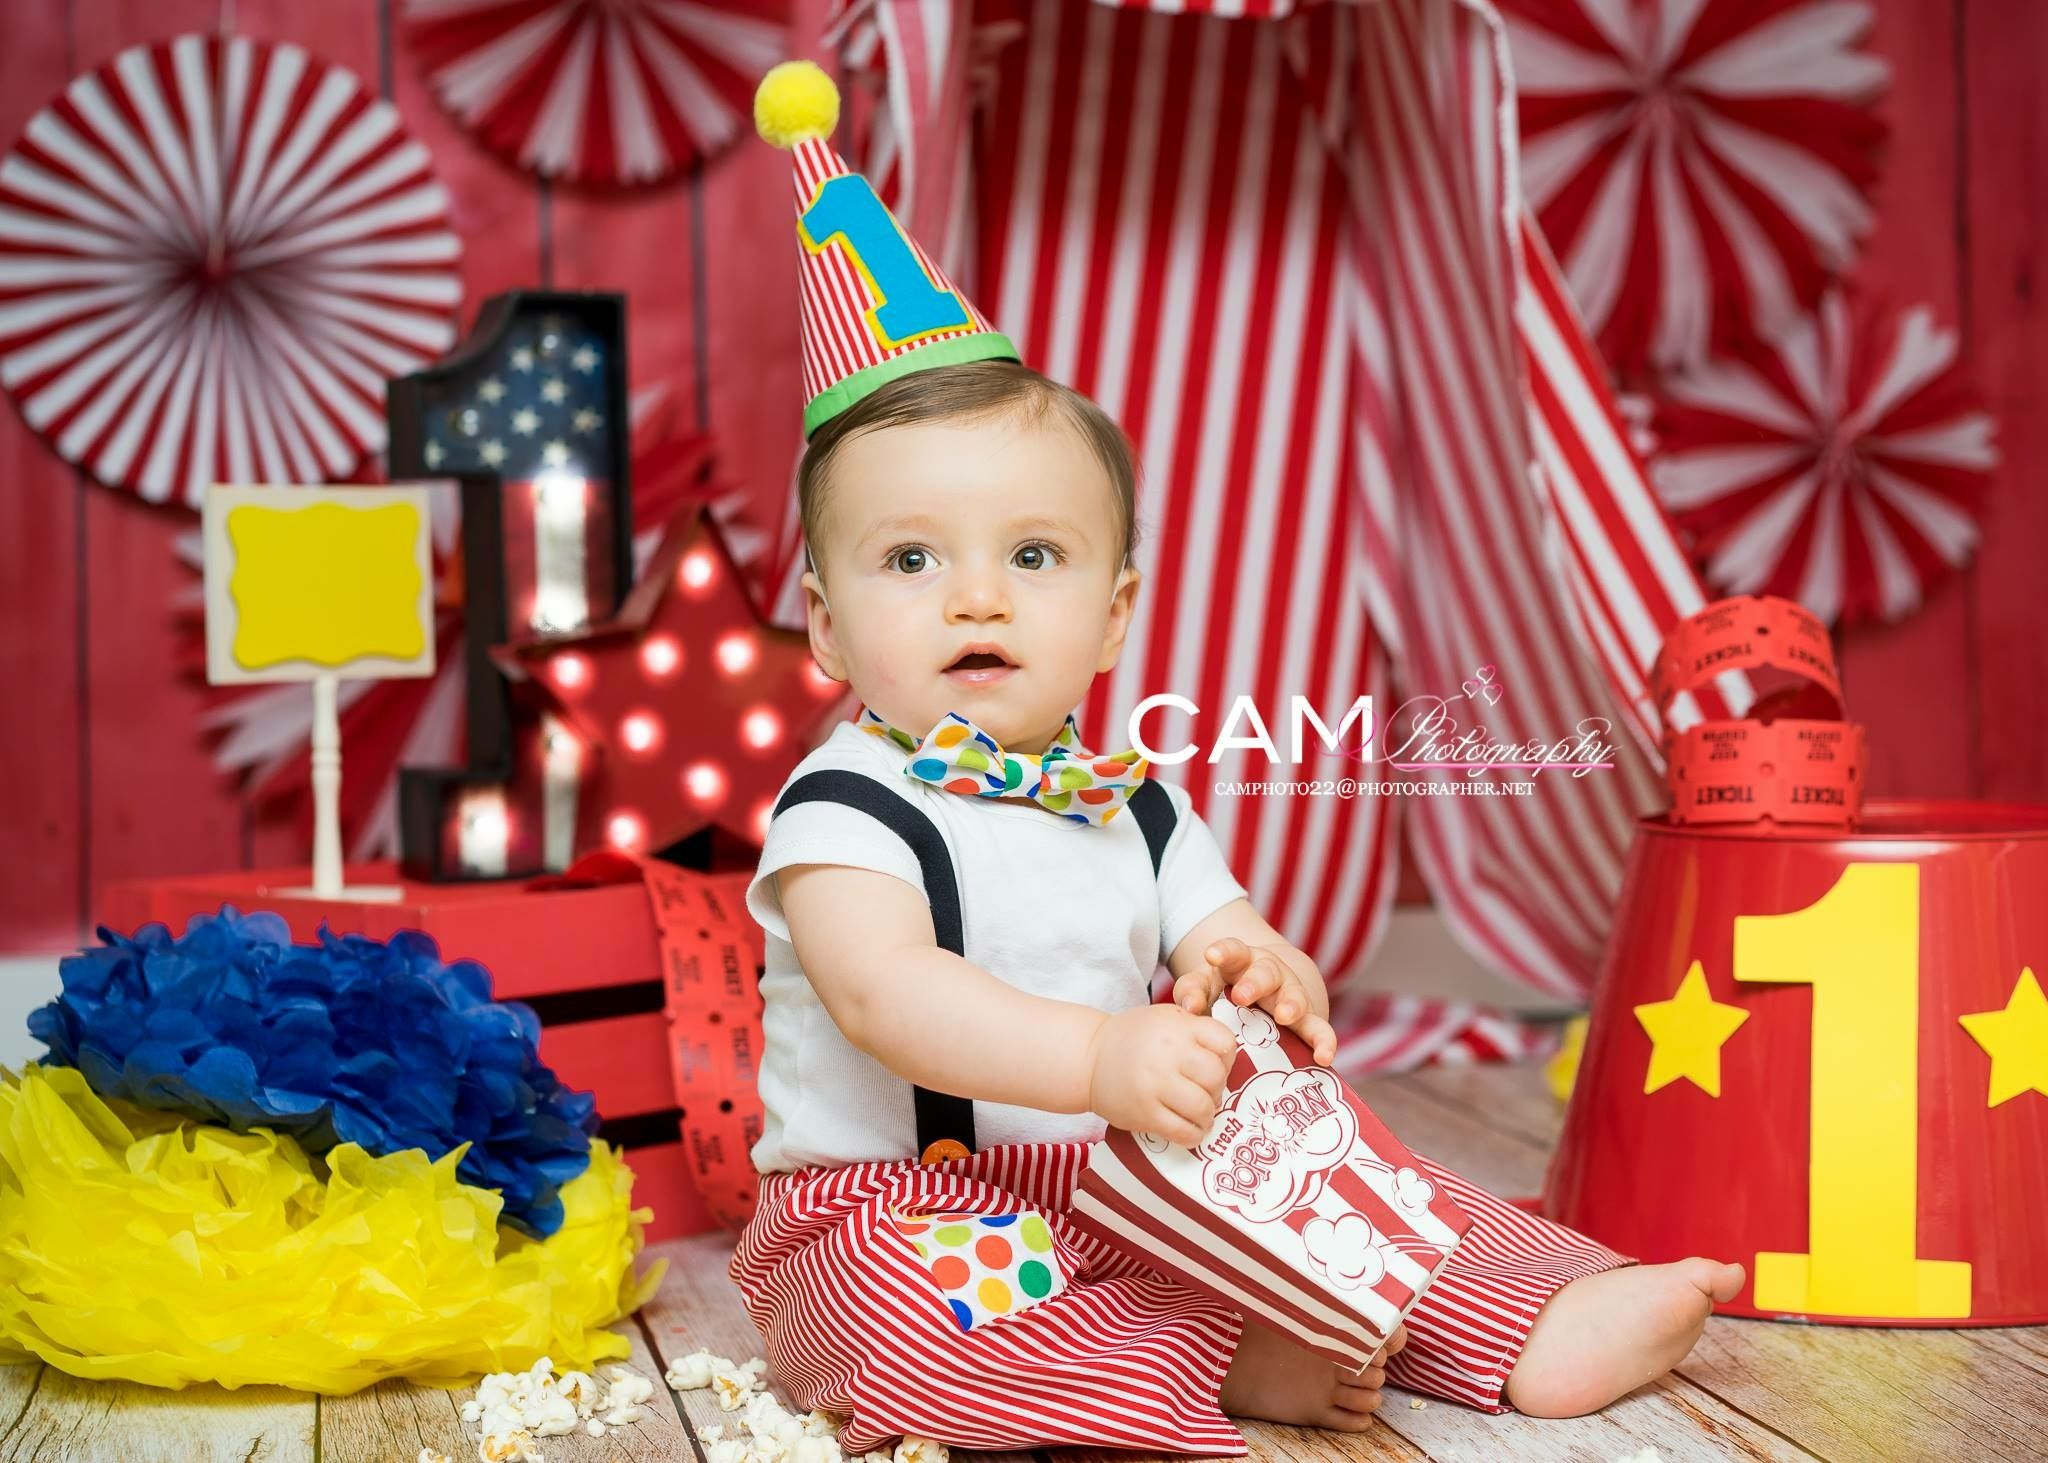 Cake Smash Boy Circus The Big Top First Birthday Theme Ideas Party Messy Red Circus Birthday Party Circus Theme Party Circus 1st Birthdays